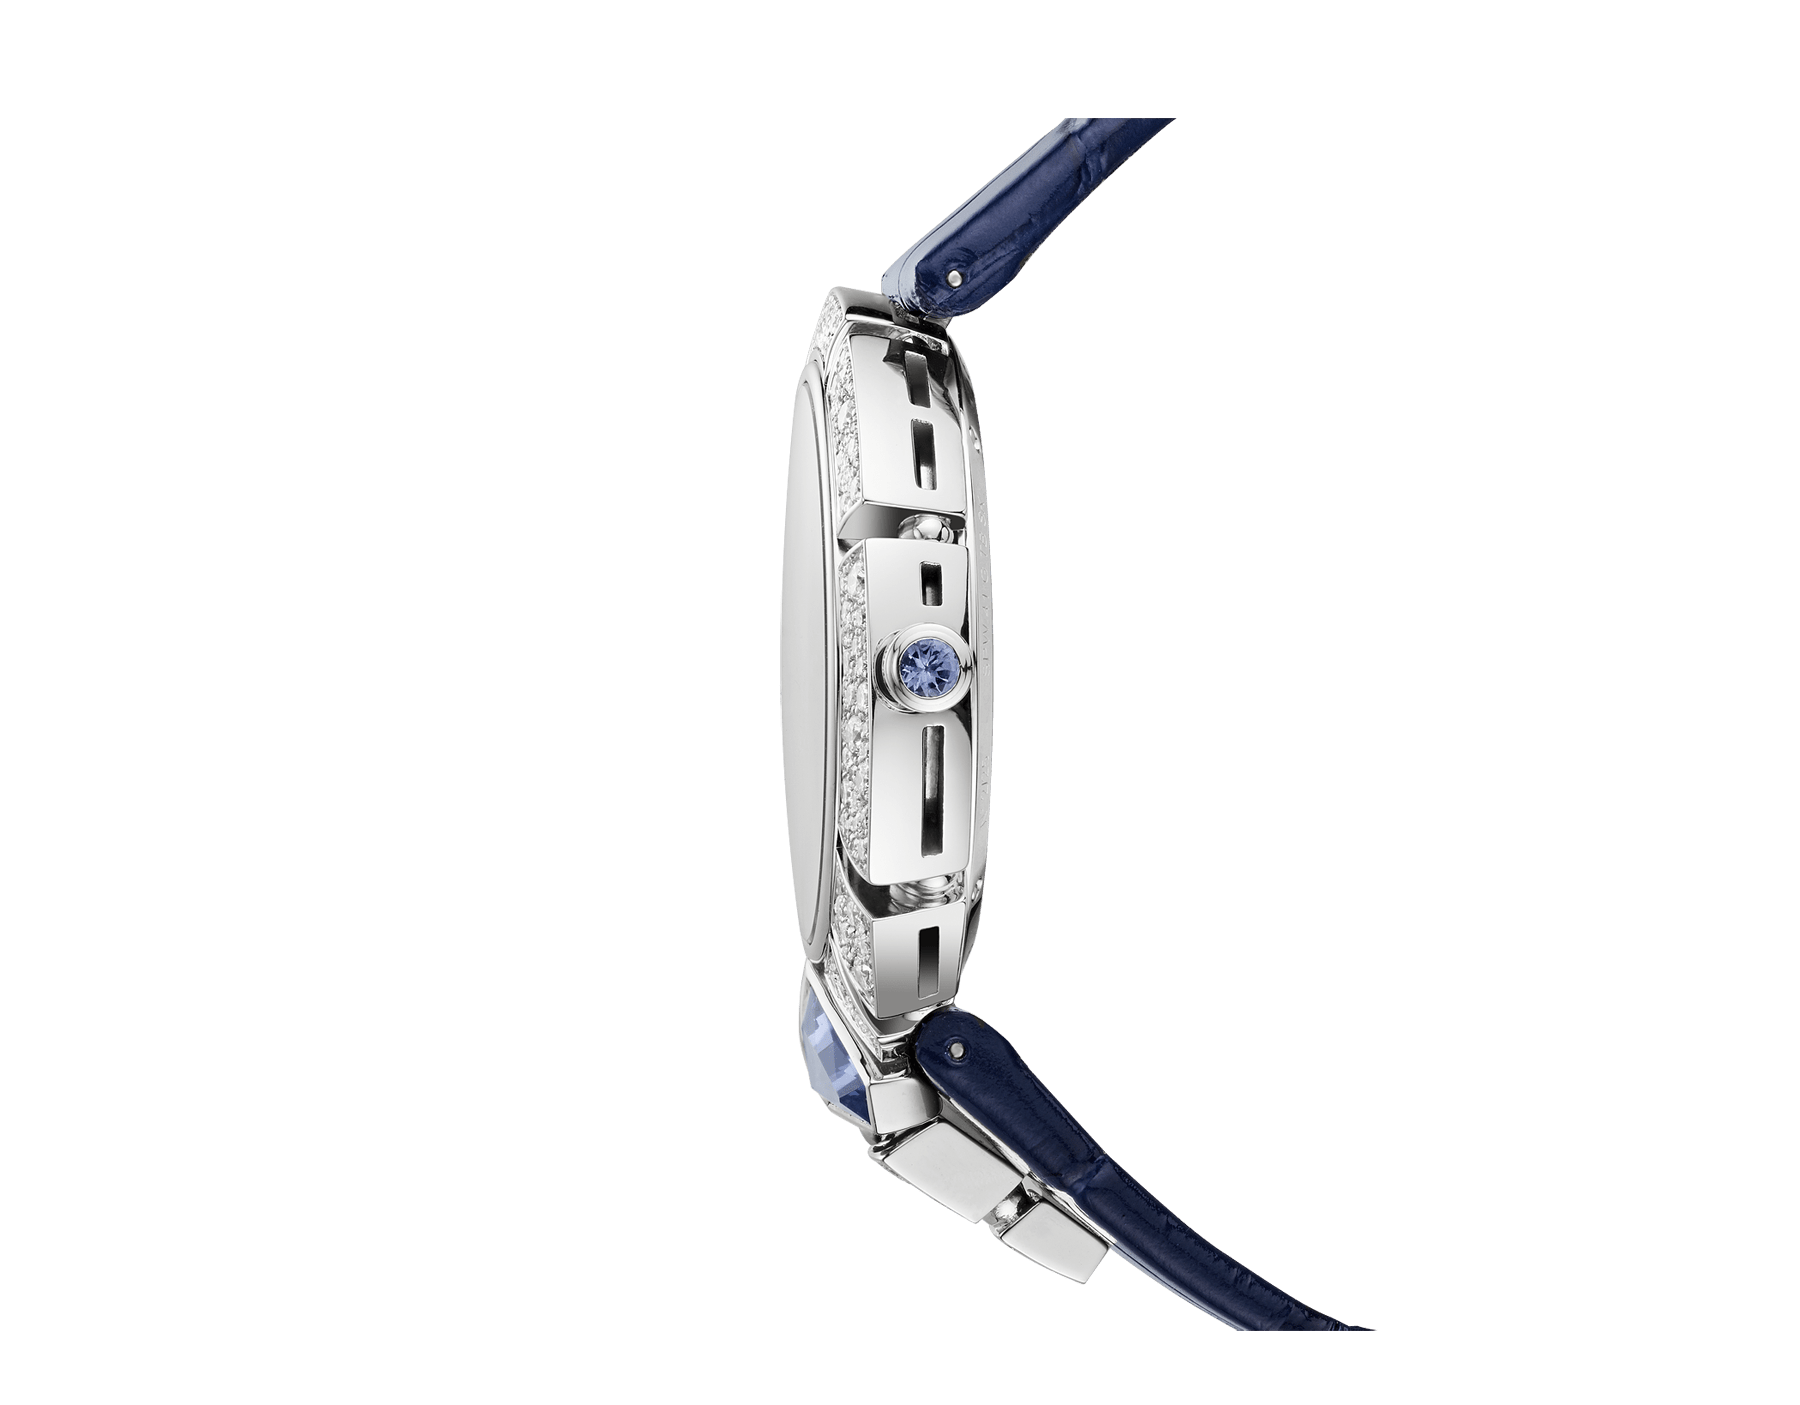 Serpenti Incantati Tourbillon watch with manufacture mechanical skeletonized movement, manual winding, 18 kt white gold case set with brilliant cut diamonds and a tanzanite, transparent dial and blue alligator bracelet. 102723 image 3